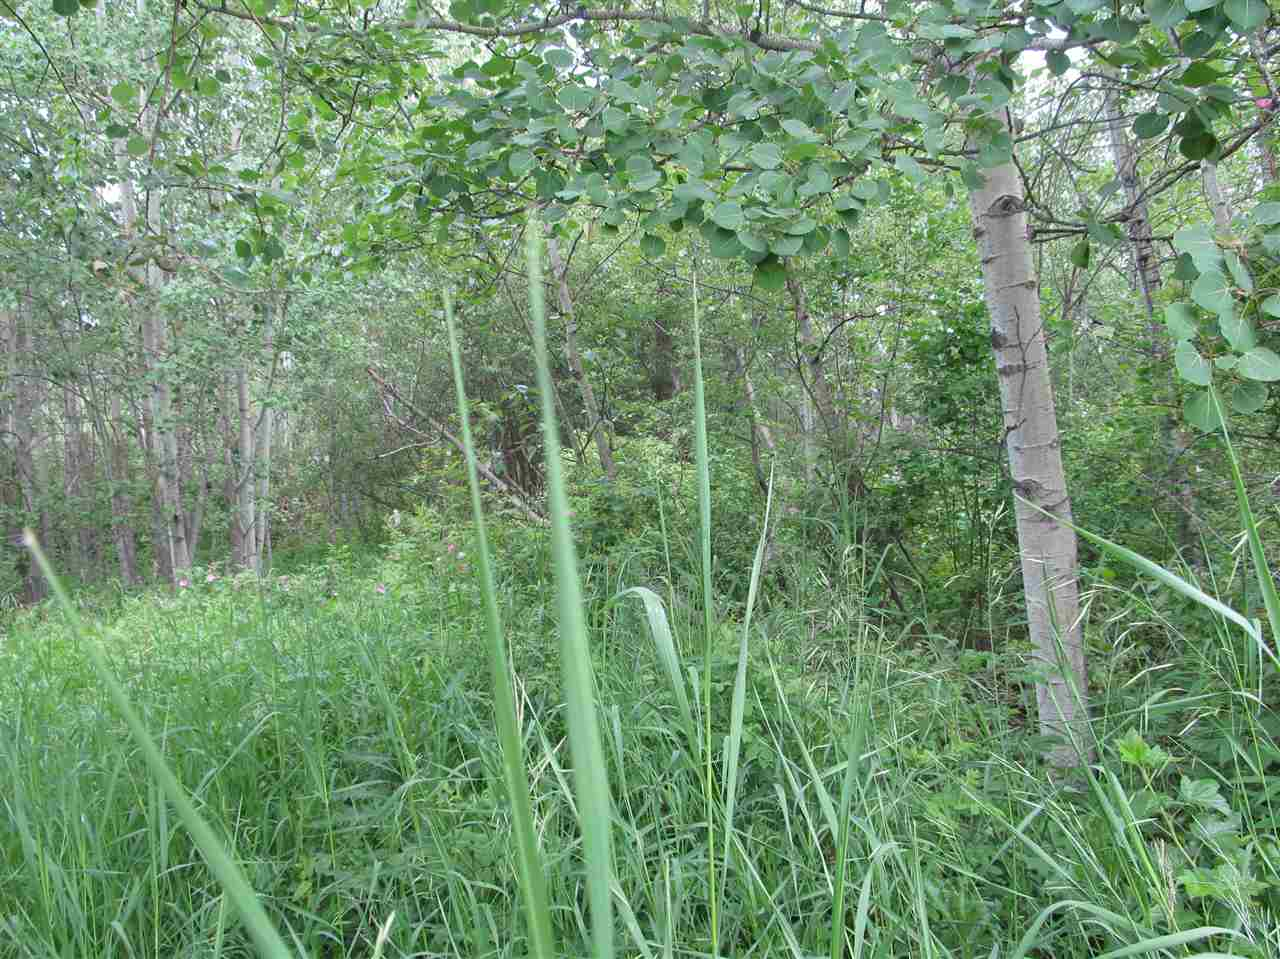 Photo 3: 451 Lakeview Drive: Rural Lac Ste. Anne County Rural Land/Vacant Lot for sale : MLS(r) # E4046294